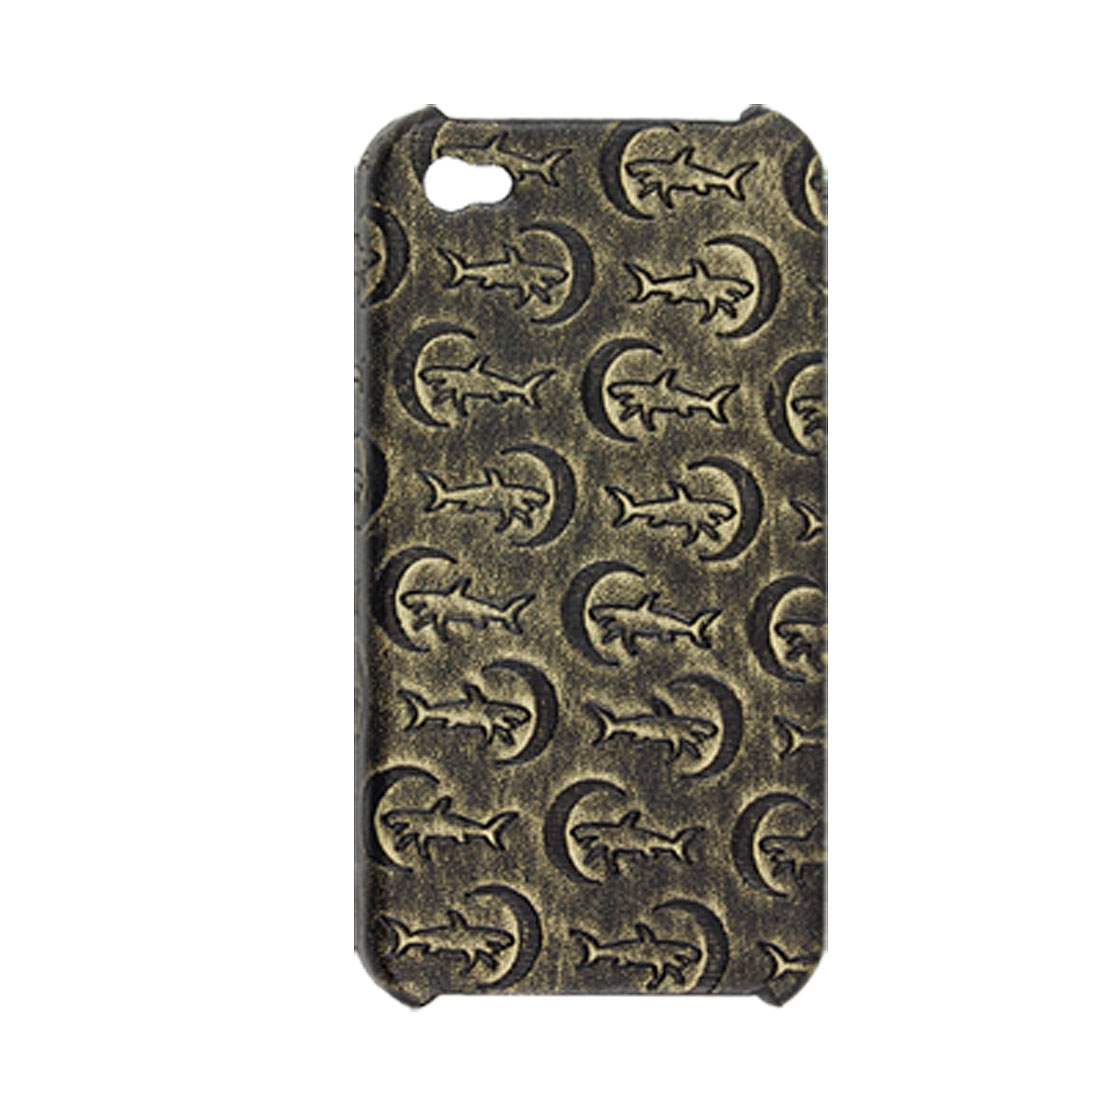 Faux Leather Coated Shark Moon Pattern Hard Plastic Case for iPhone 4 4G